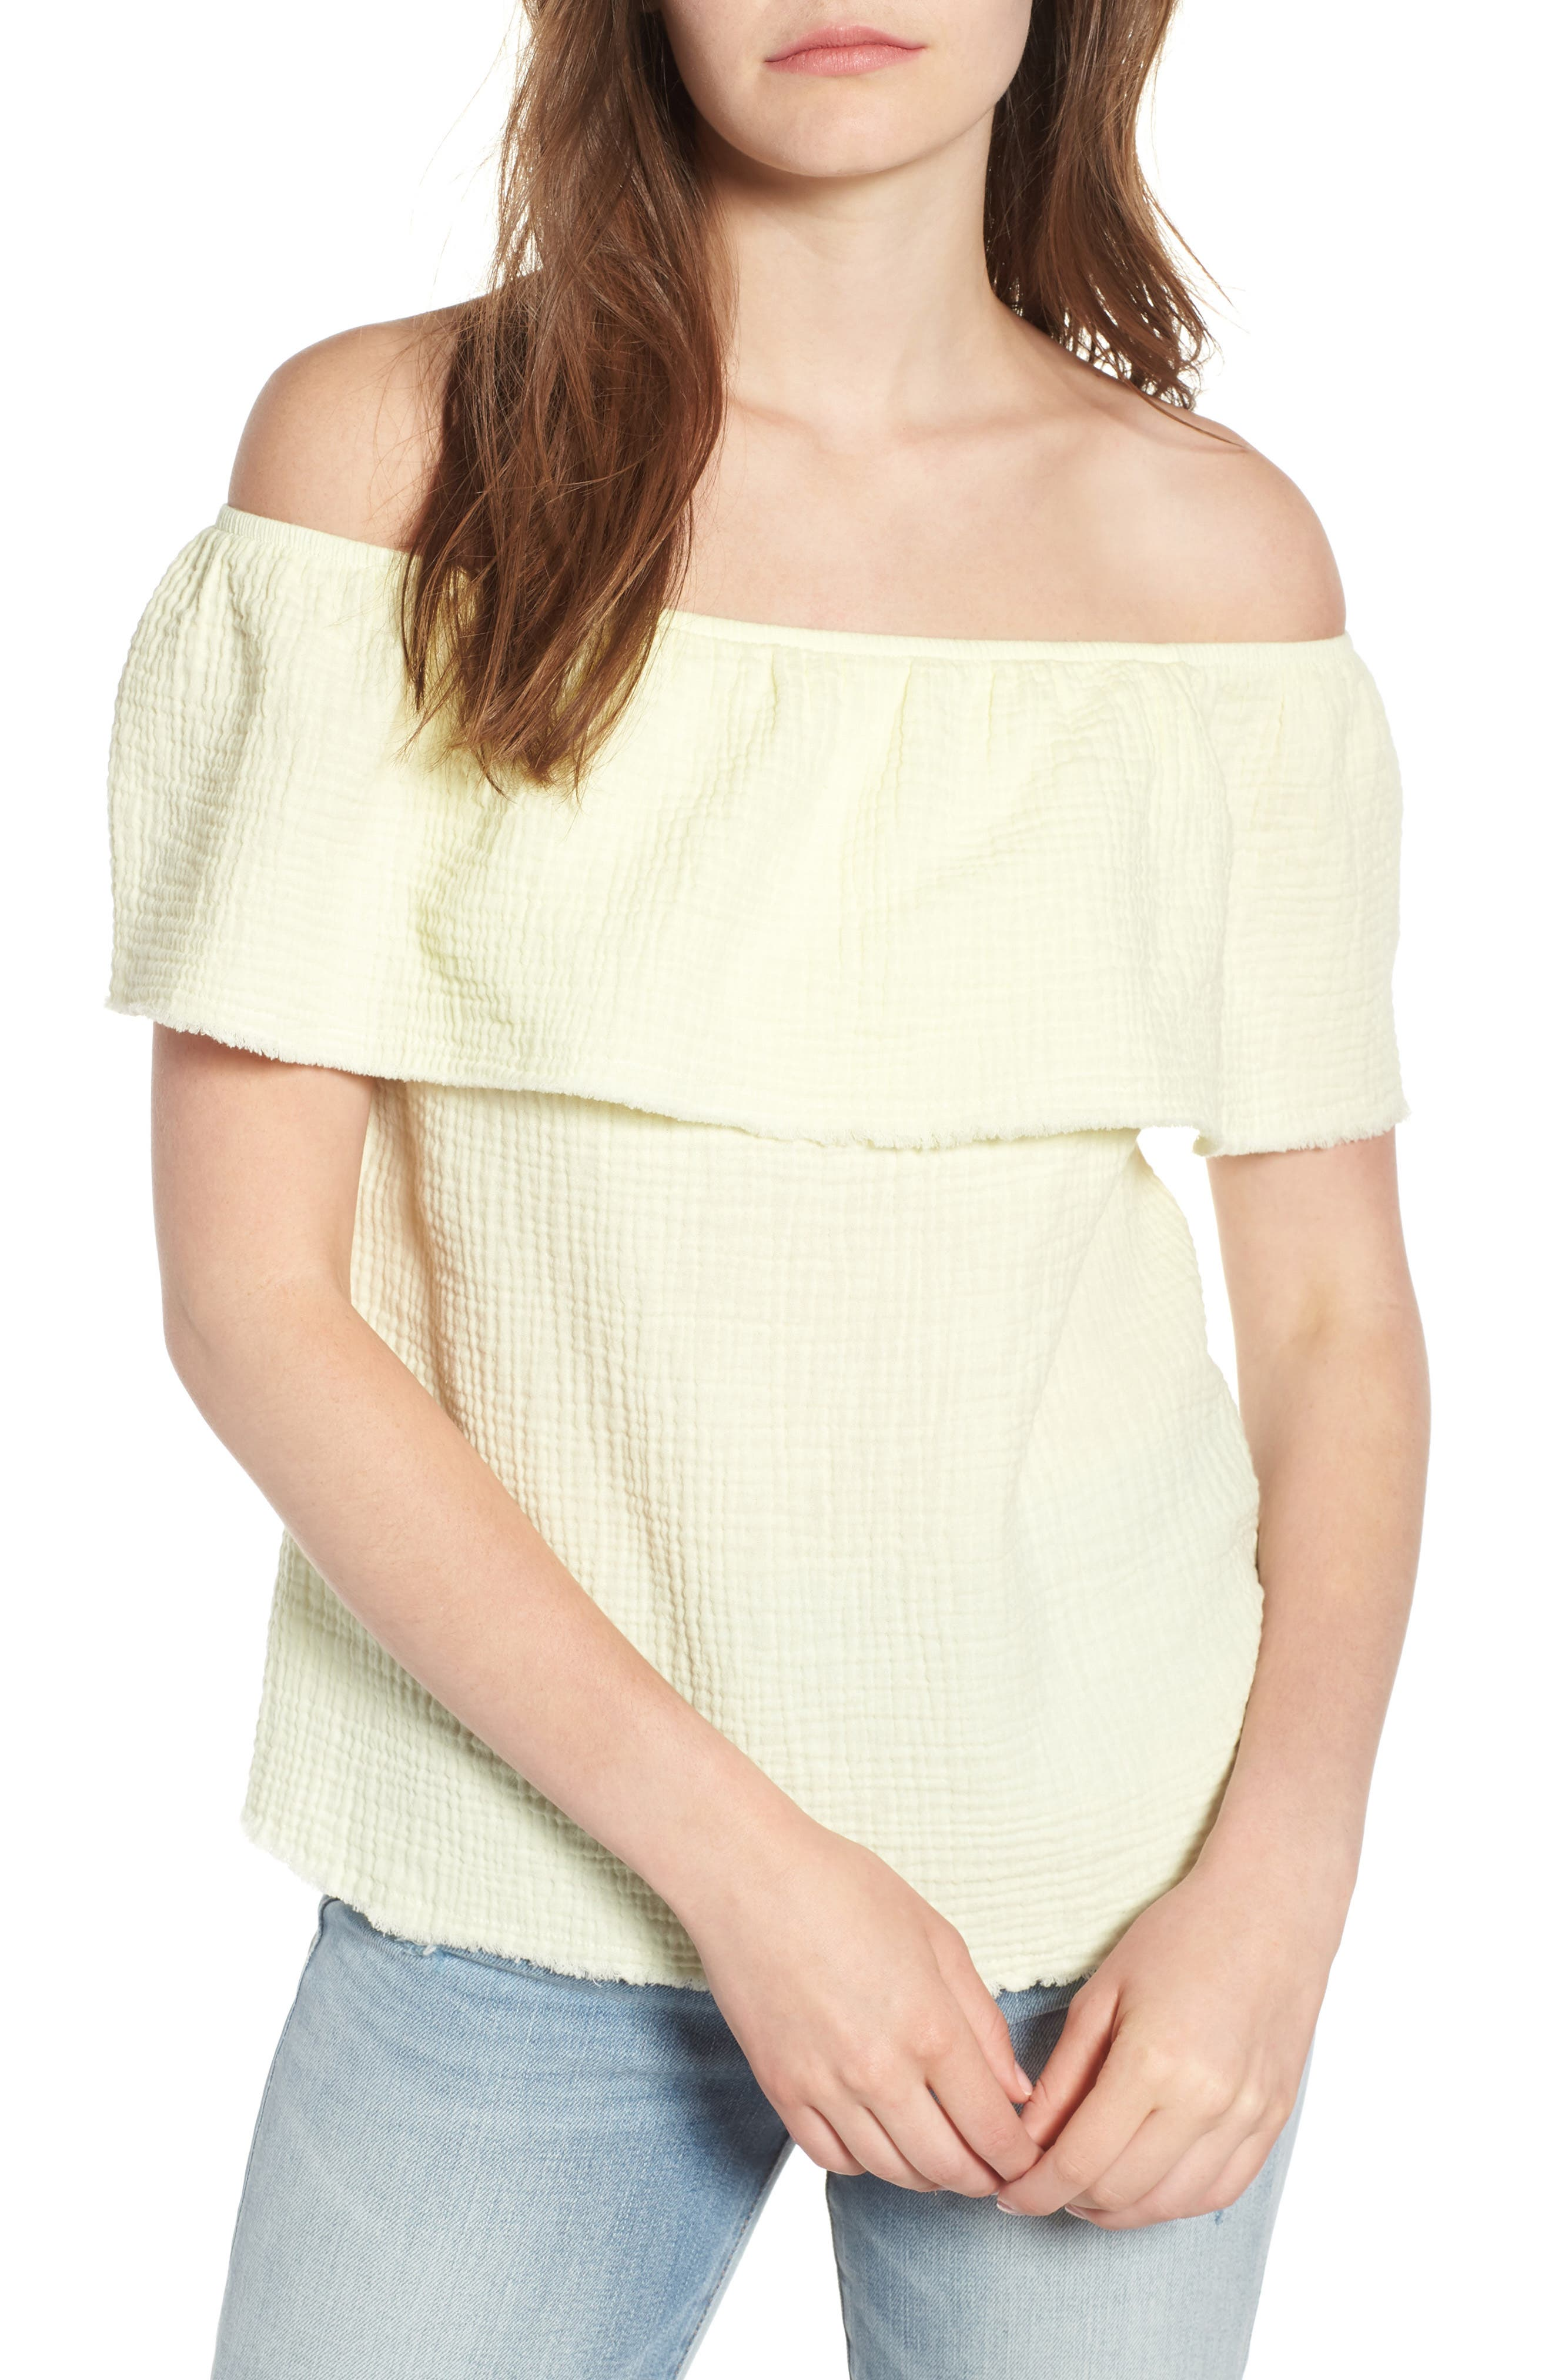 Socialite Ruffle Off the Shoulder Top